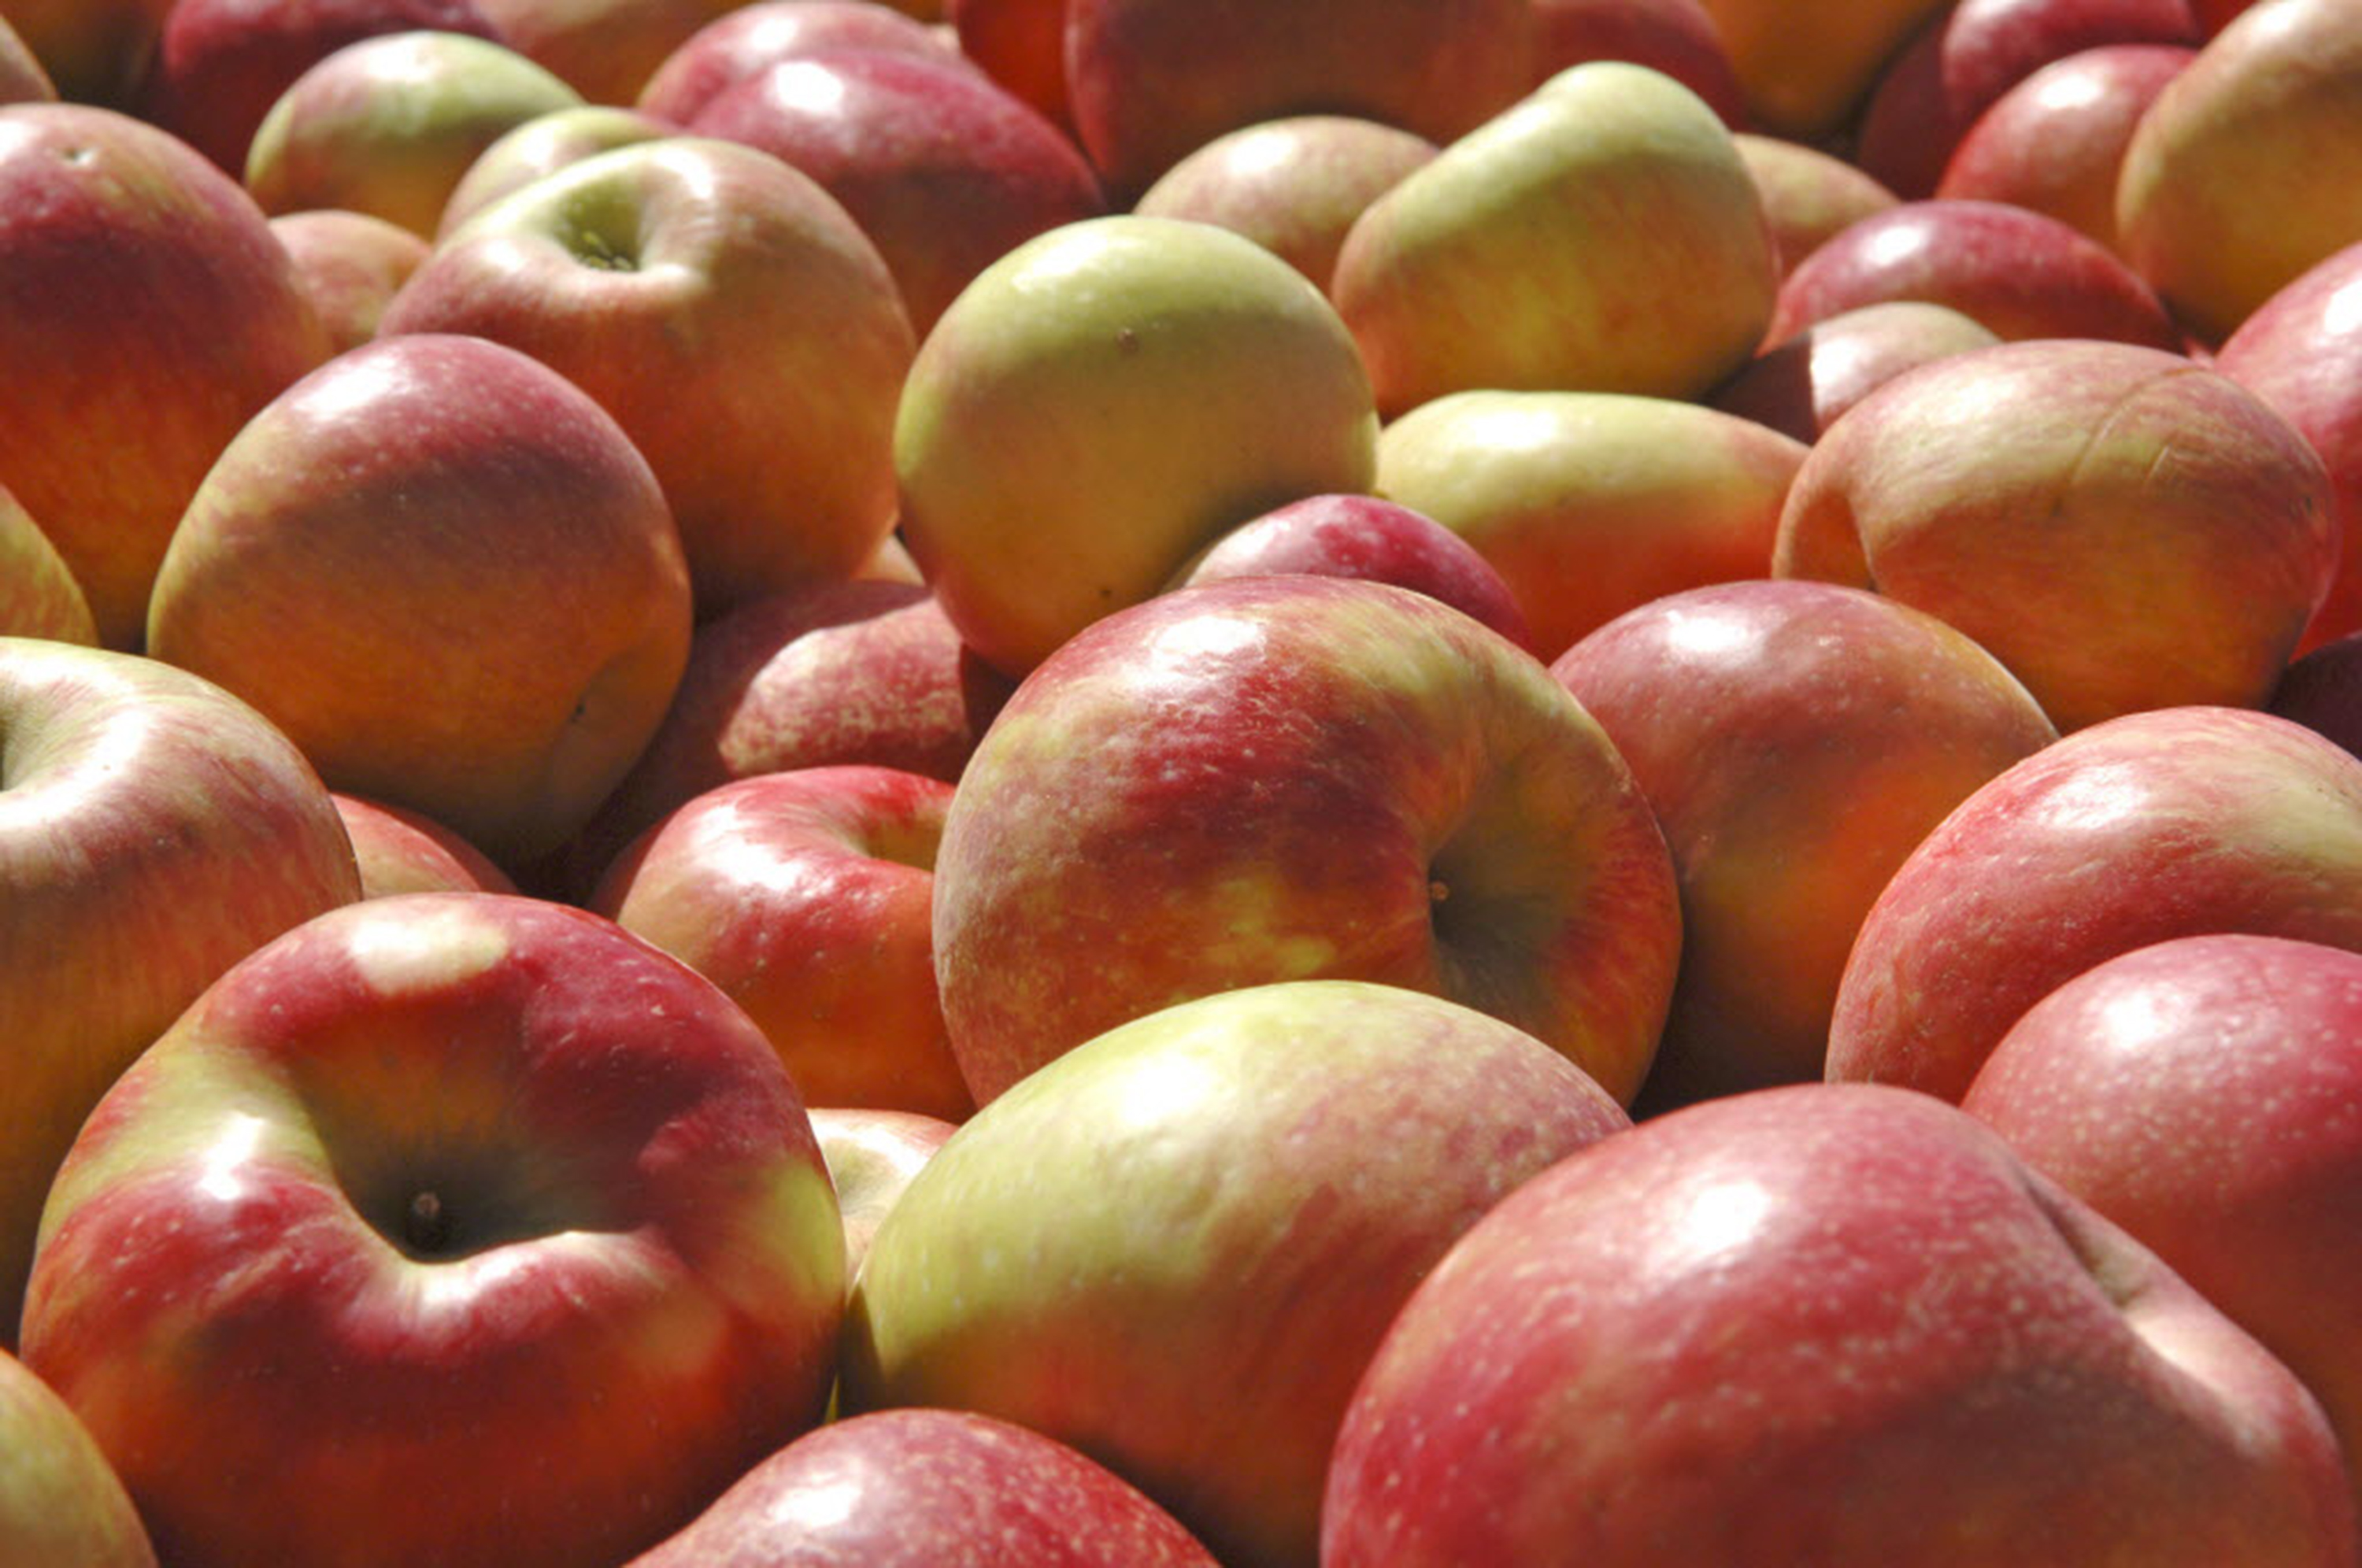 Spend time out in the crisp fall air picking apples.